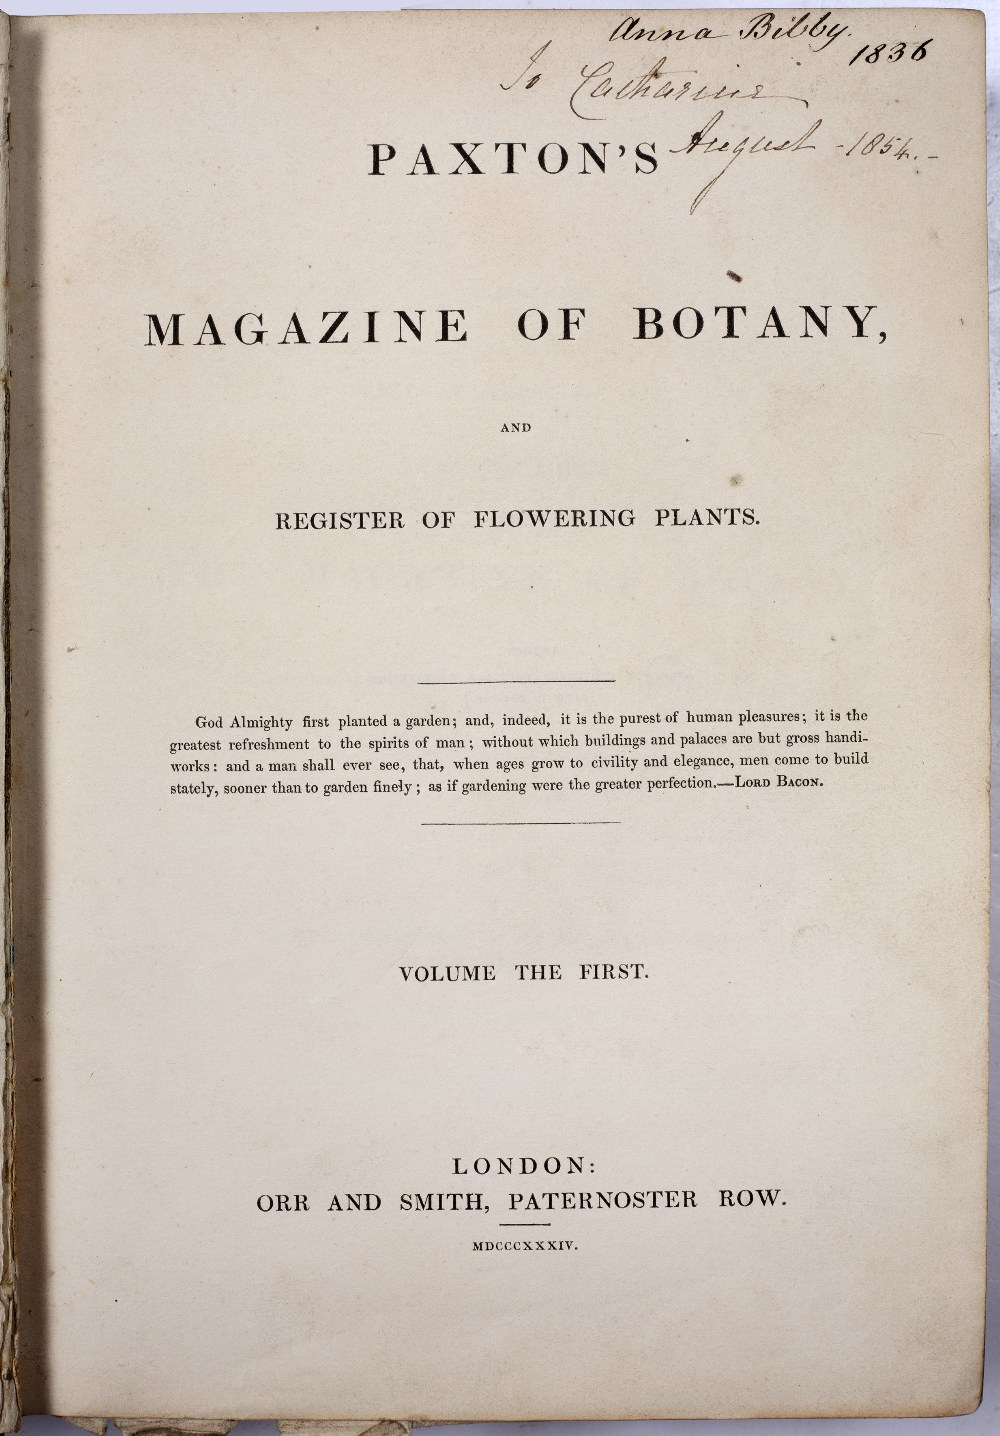 PAXTON'S MAGAZINE OF BOTANY FOR 1833/1834 with multiple coloured plates, Orr and Smith, London. 8vo. - Image 2 of 3